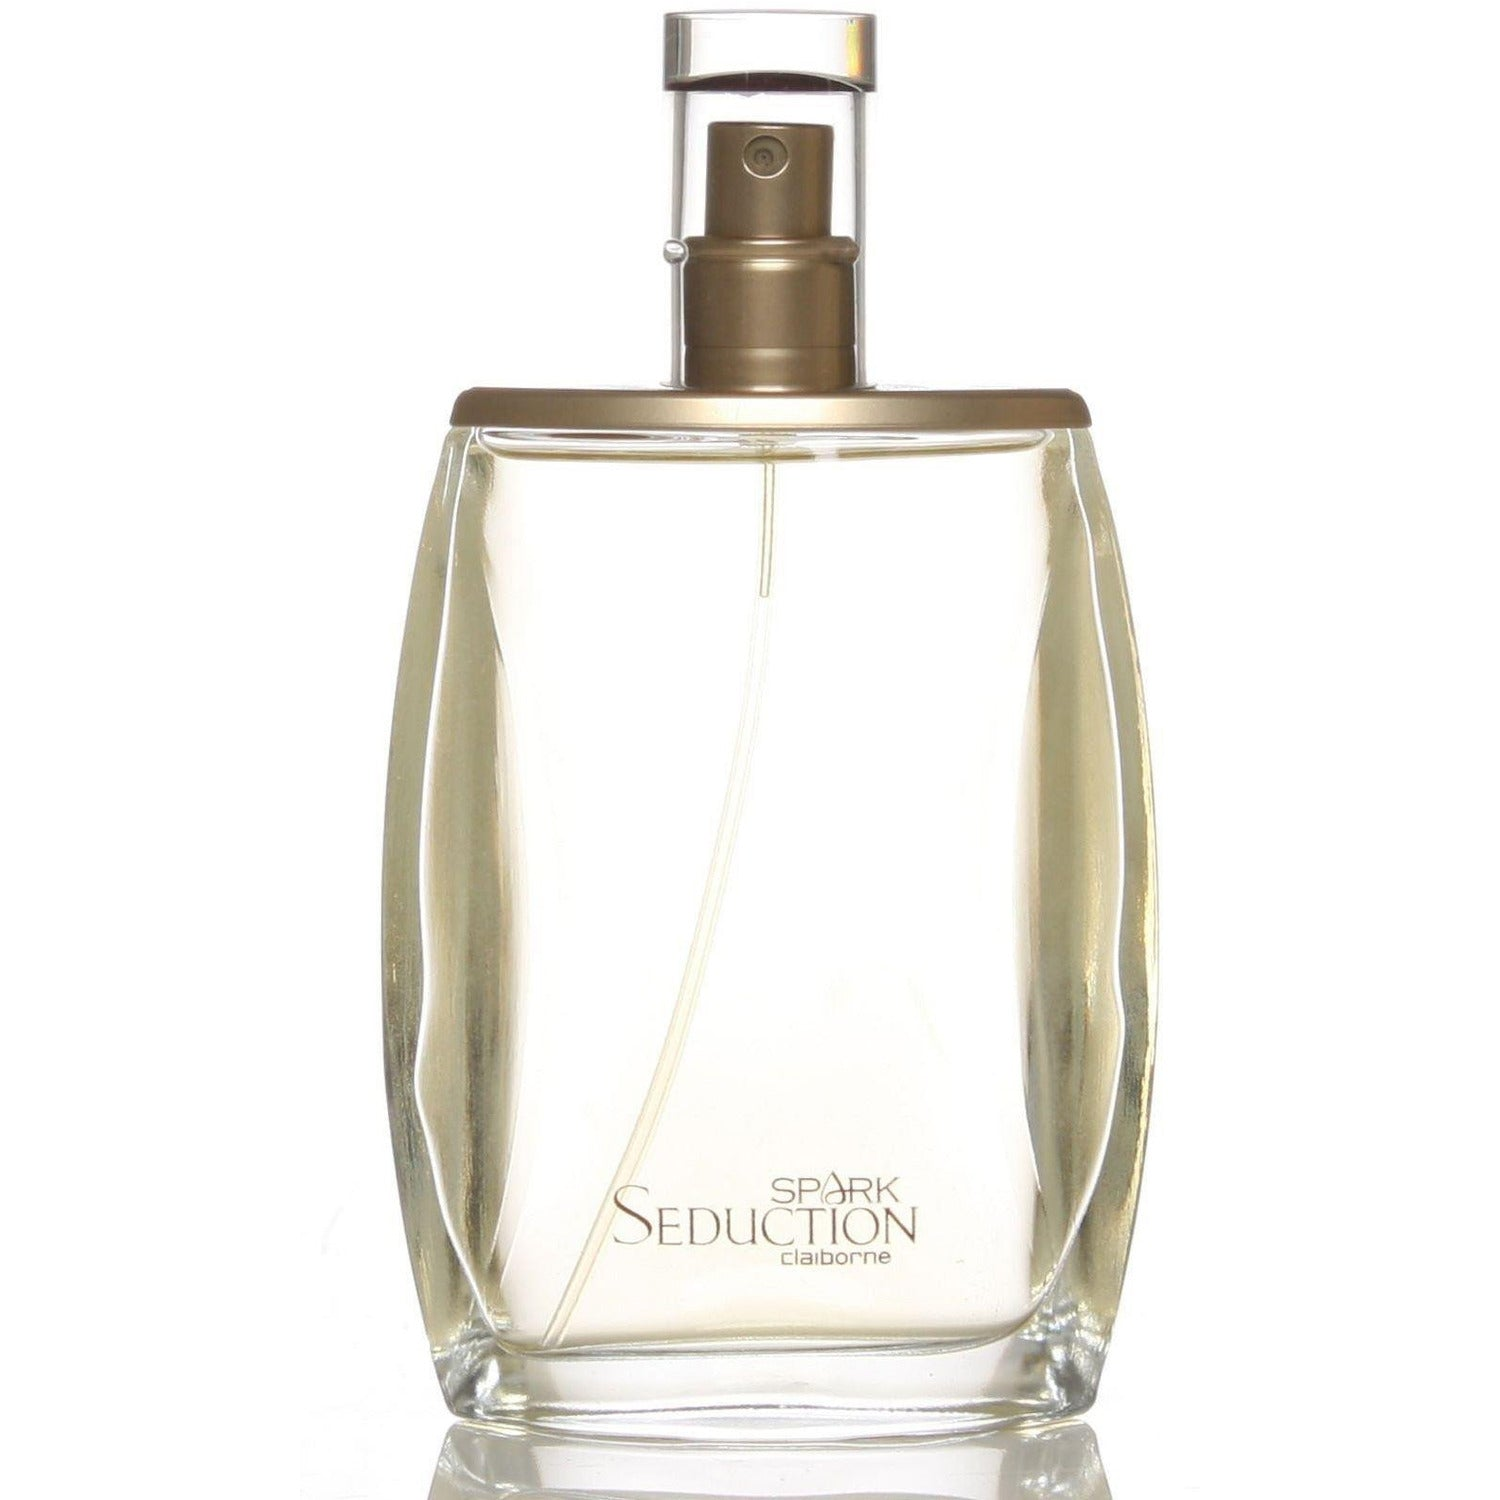 spark-seduction-liz-claiborne-men-cologne-edc-3-4-oz-3-3-new-unboxed-with-cap